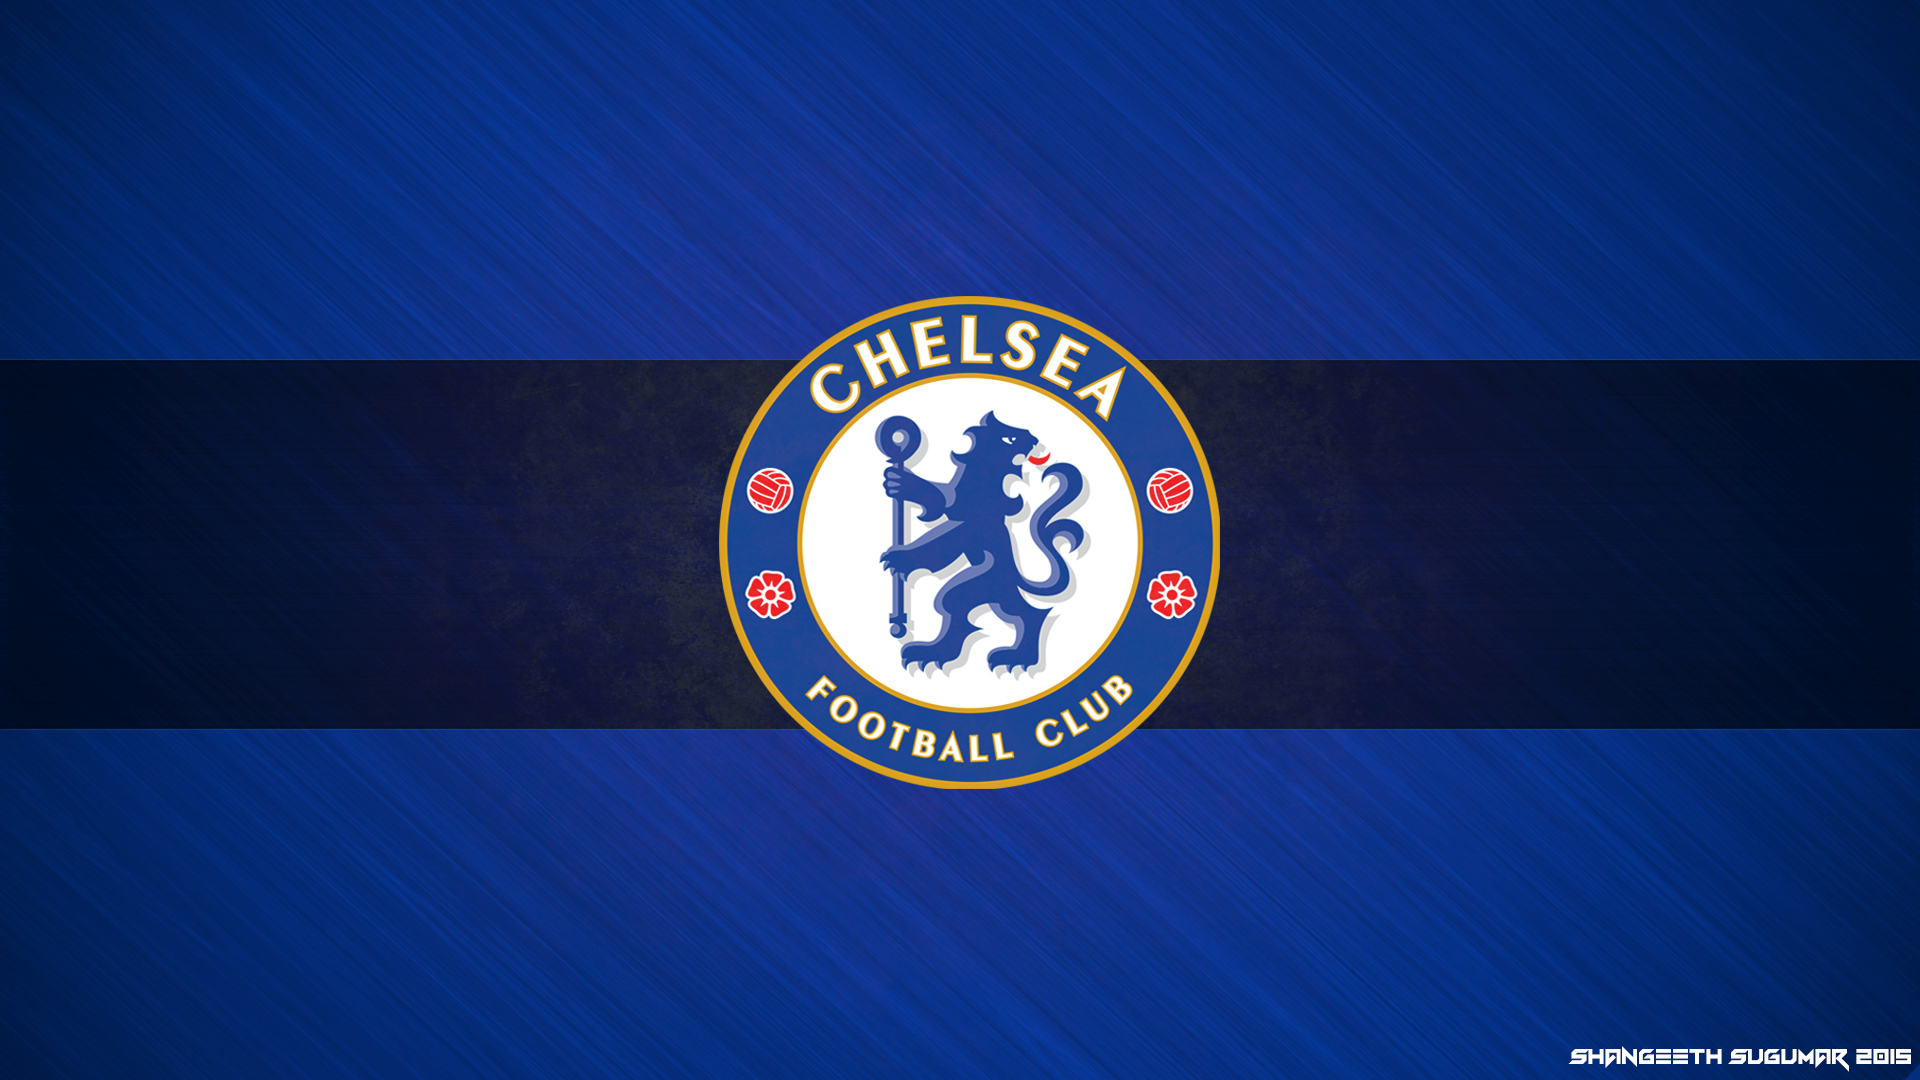 chelsea fc wallpapers for pc - photo #20